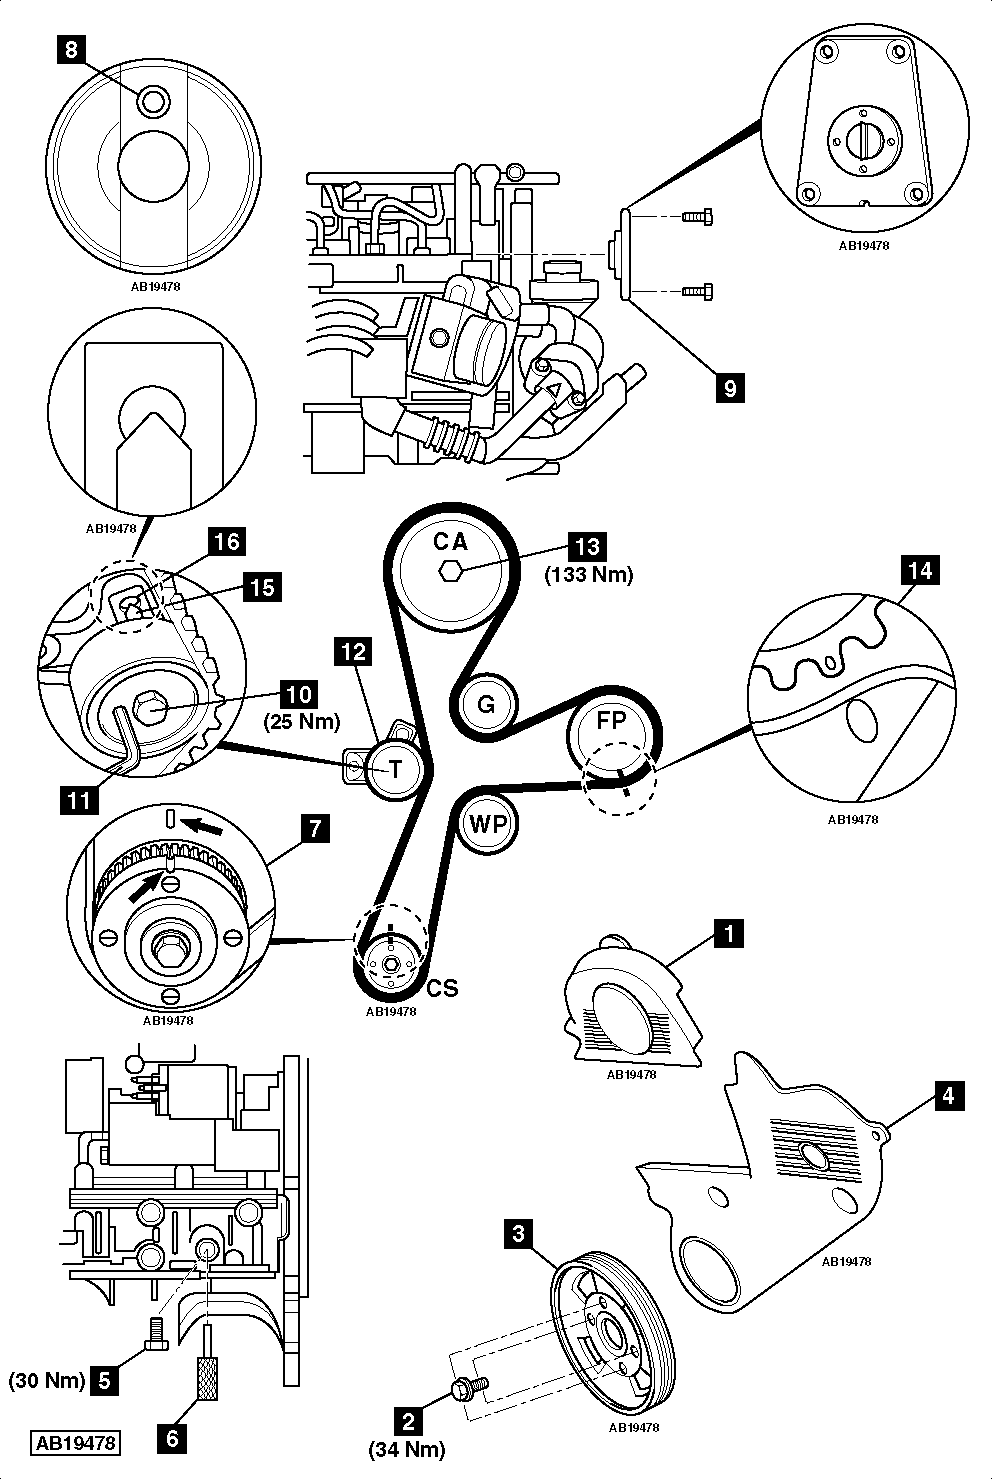 Chevrolet Sonic Parts Diagrams also 2009 Chevy Malibu Wiring Diagram in addition T5558751 Timing marks 2 4 liter chevy malibu also 12je6 Upper Pulley Cam Timing Marks Dohc 98 Dodge Neon in addition Chevy Traverse Serpentine Belt Diagram. on 2005 chevy aveo timing belt